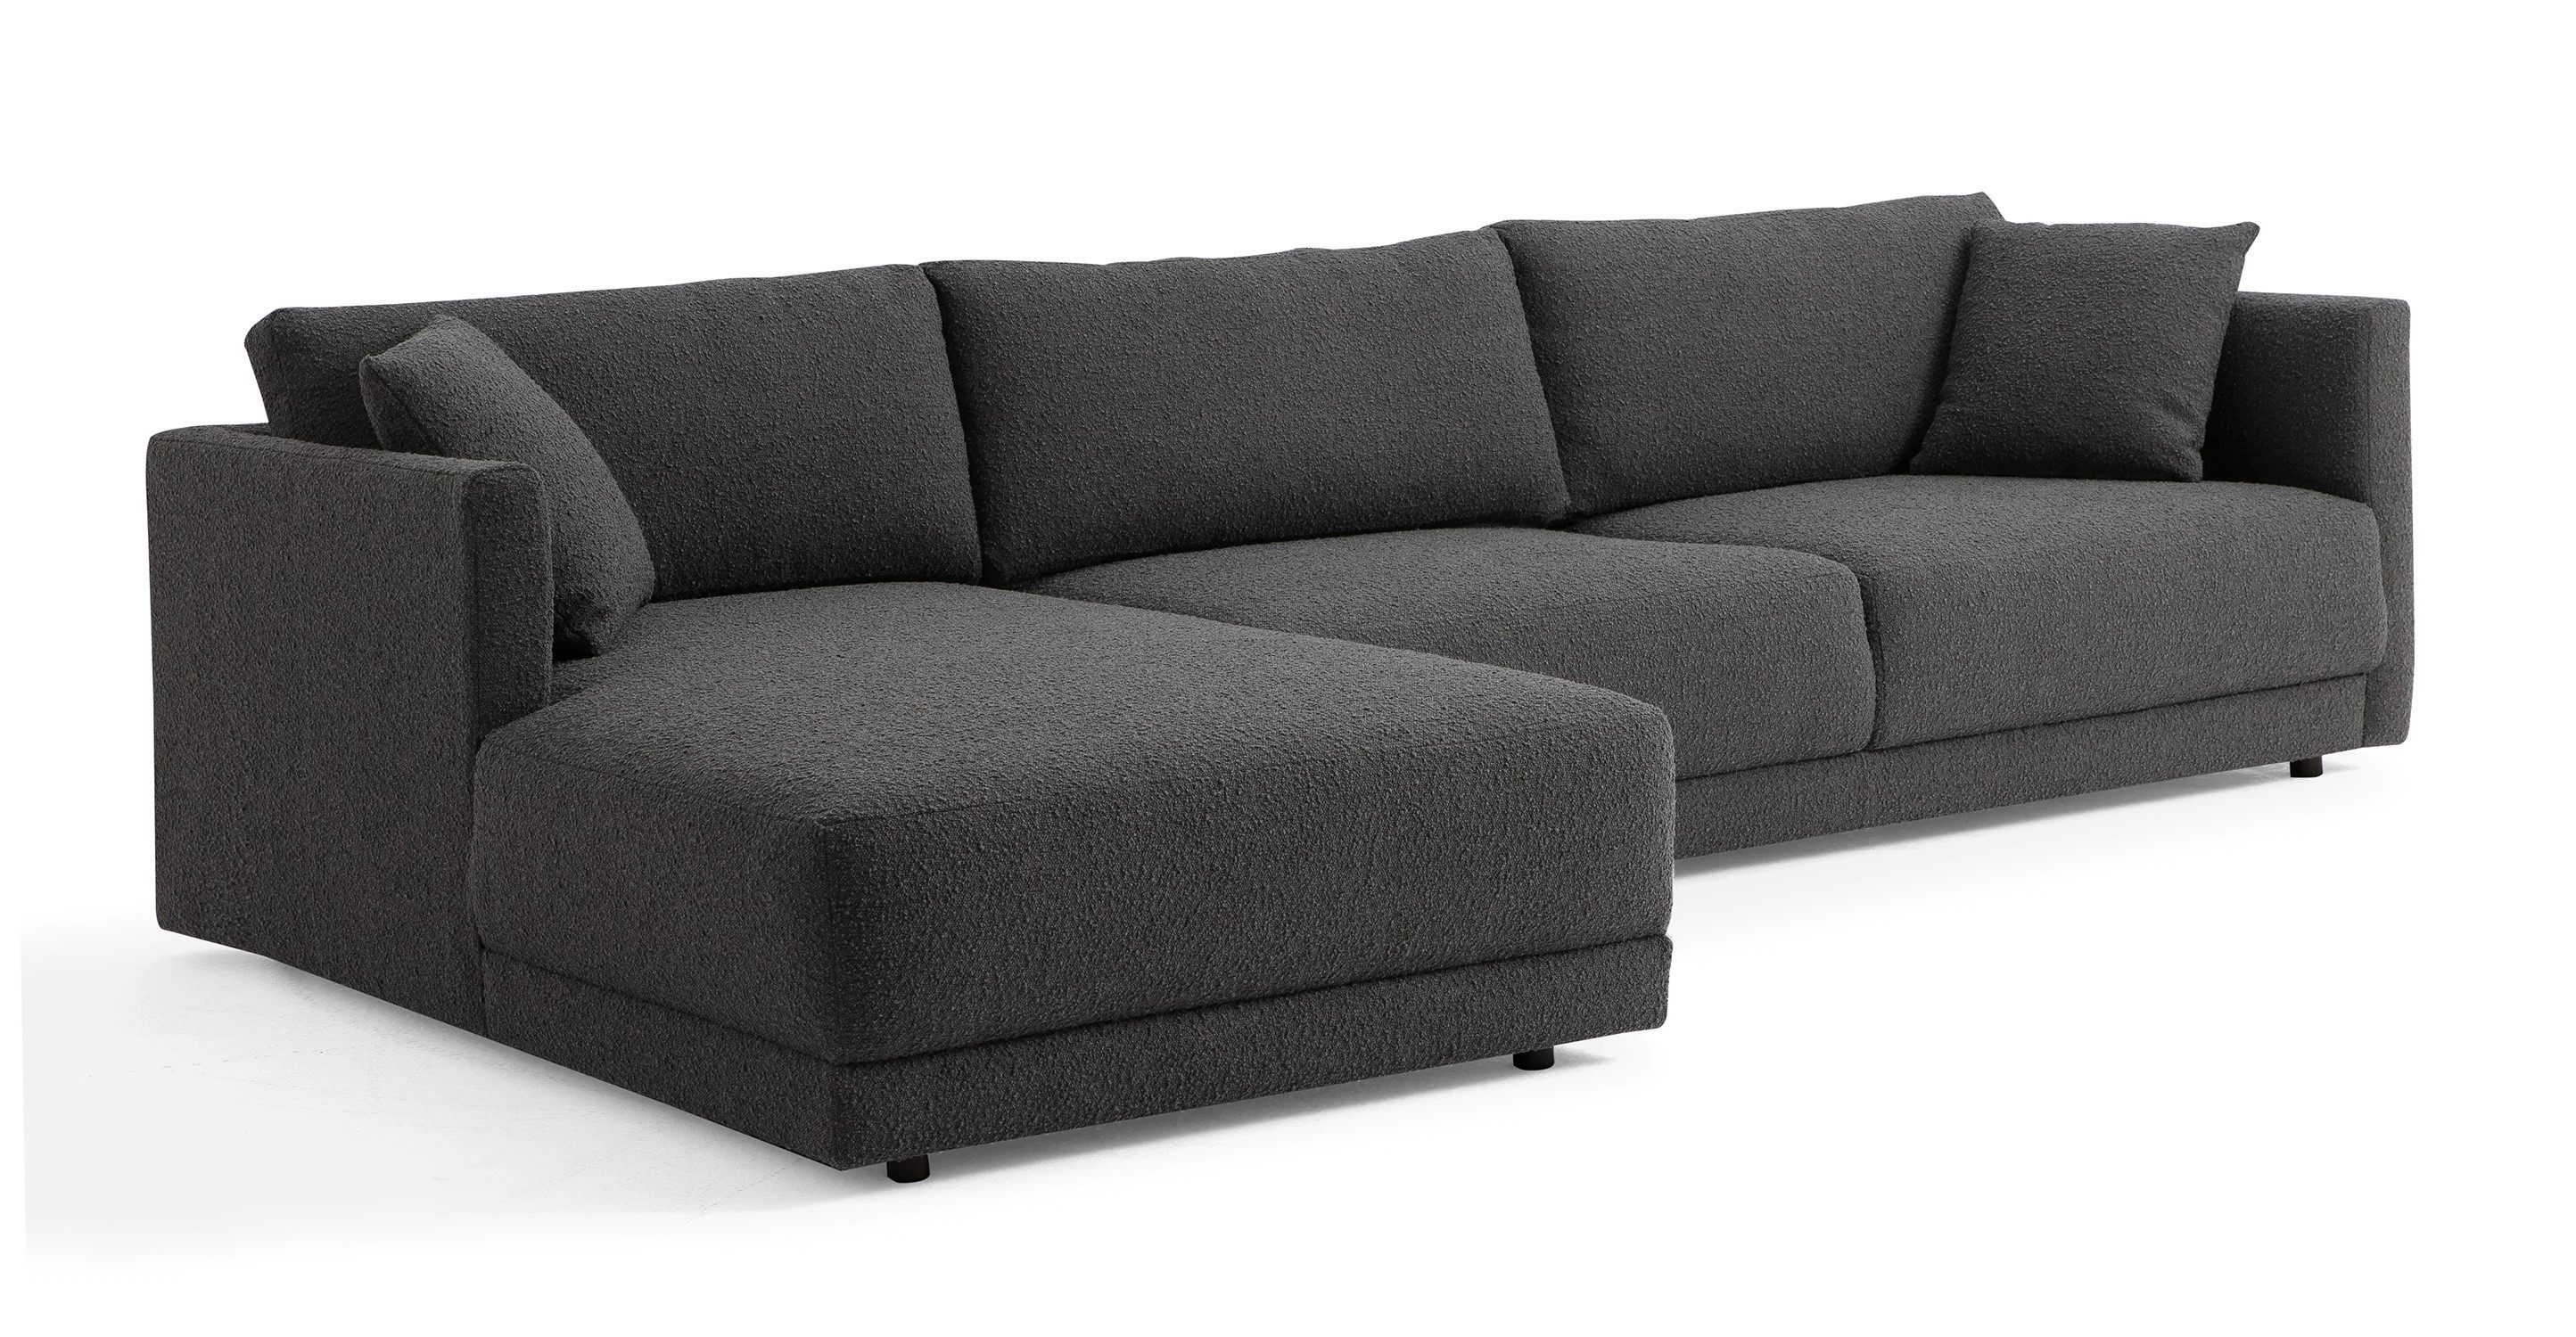 "Domus 115"" Fabric Sofa Sectional Left, Gris Boucle"